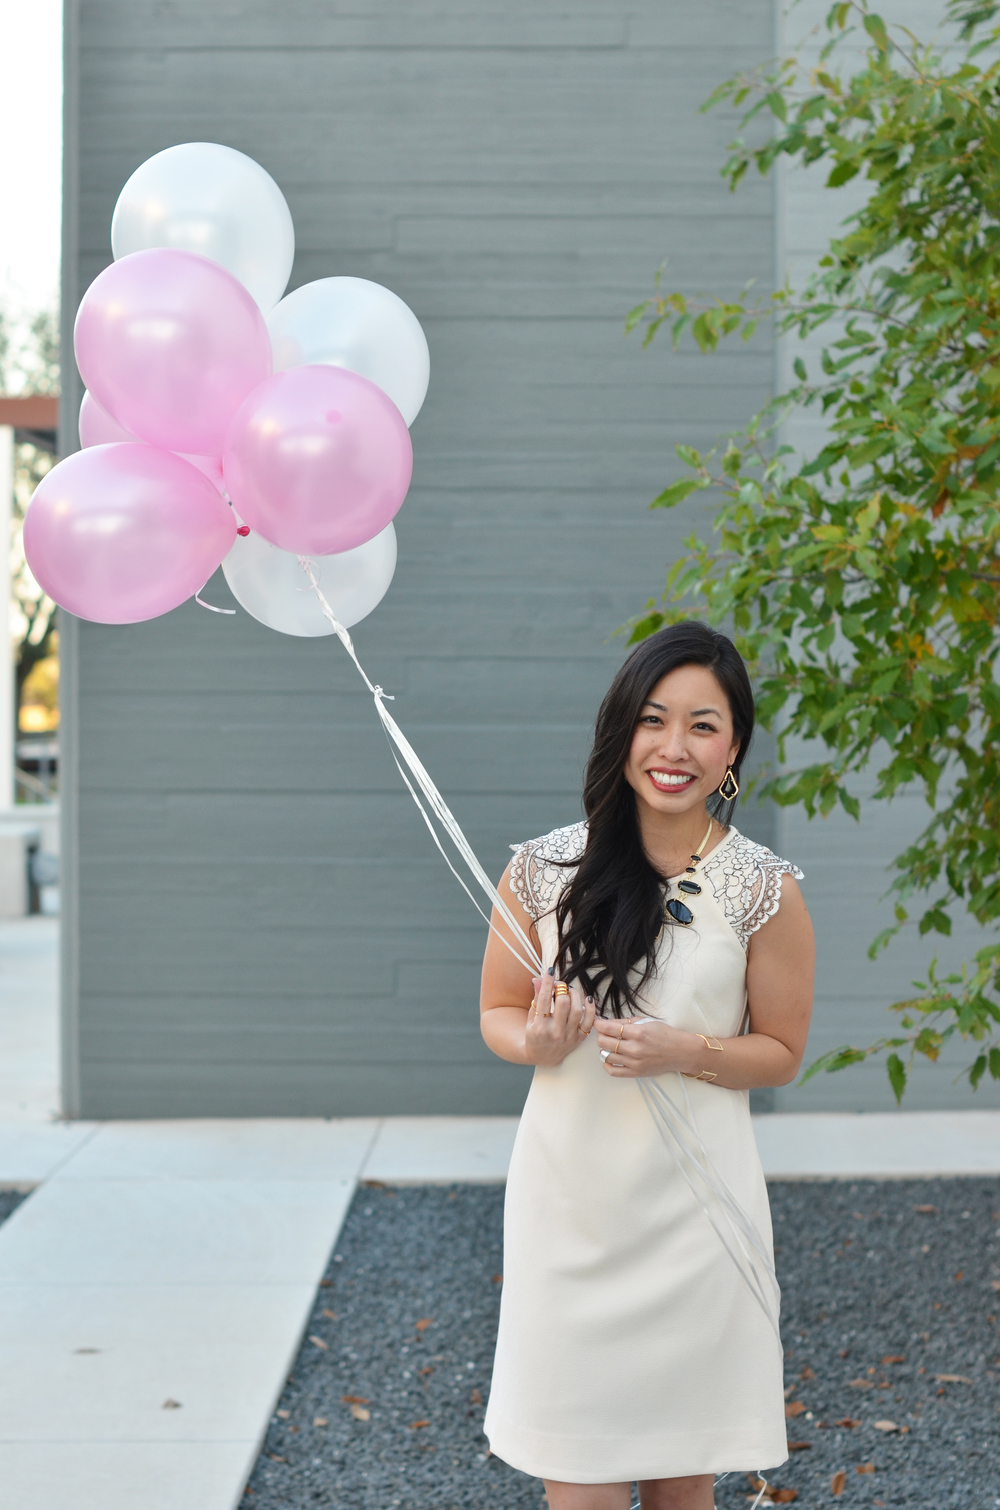 wind + balloons = tangled mess & awkward picture.